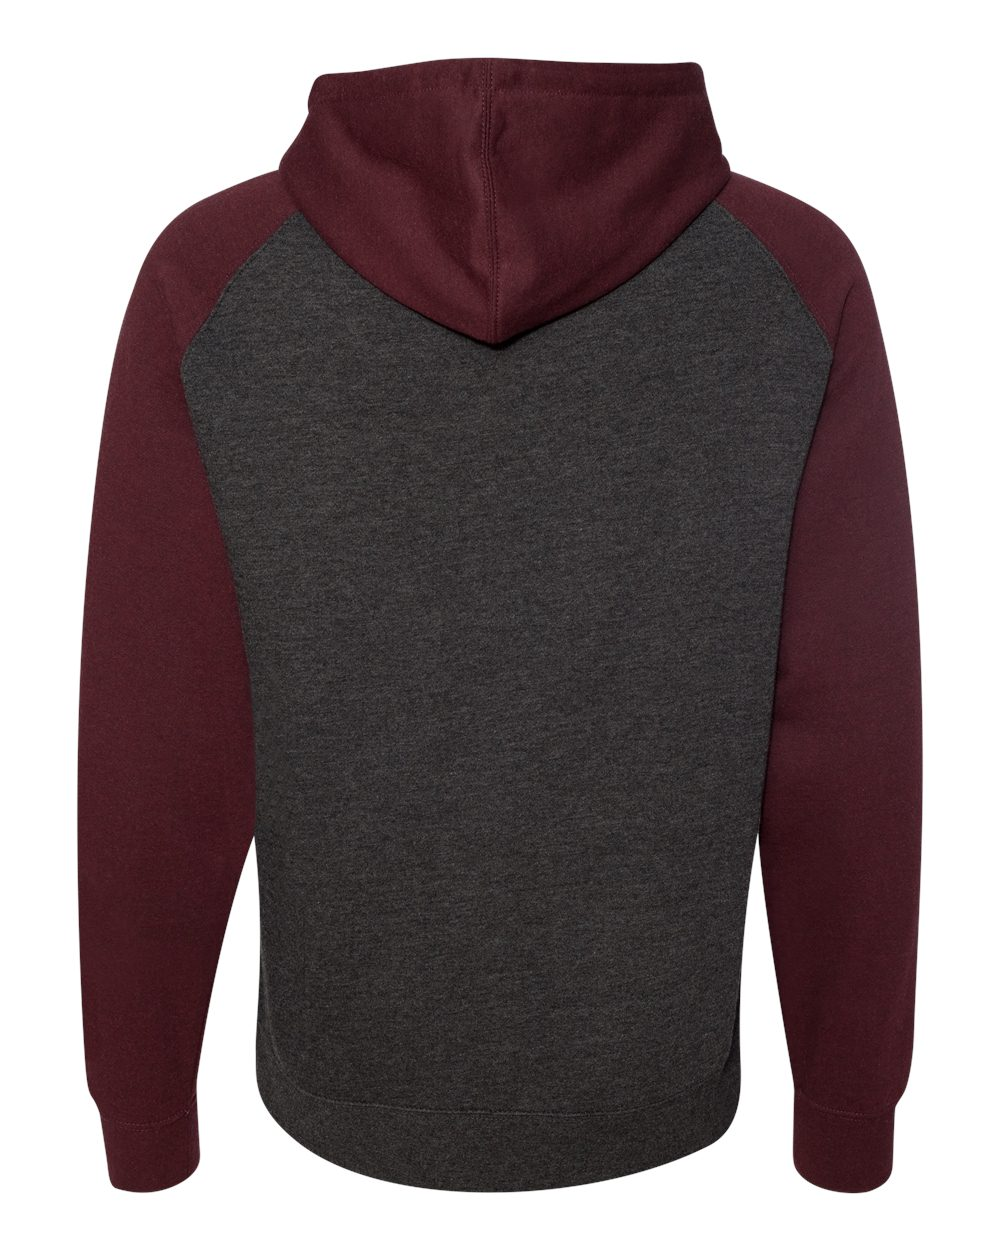 Independent-Trading-Co-Mens-Raglan-Hooded-Pullover-Sweatshirt-IND40RP-up-to-3XL miniature 13